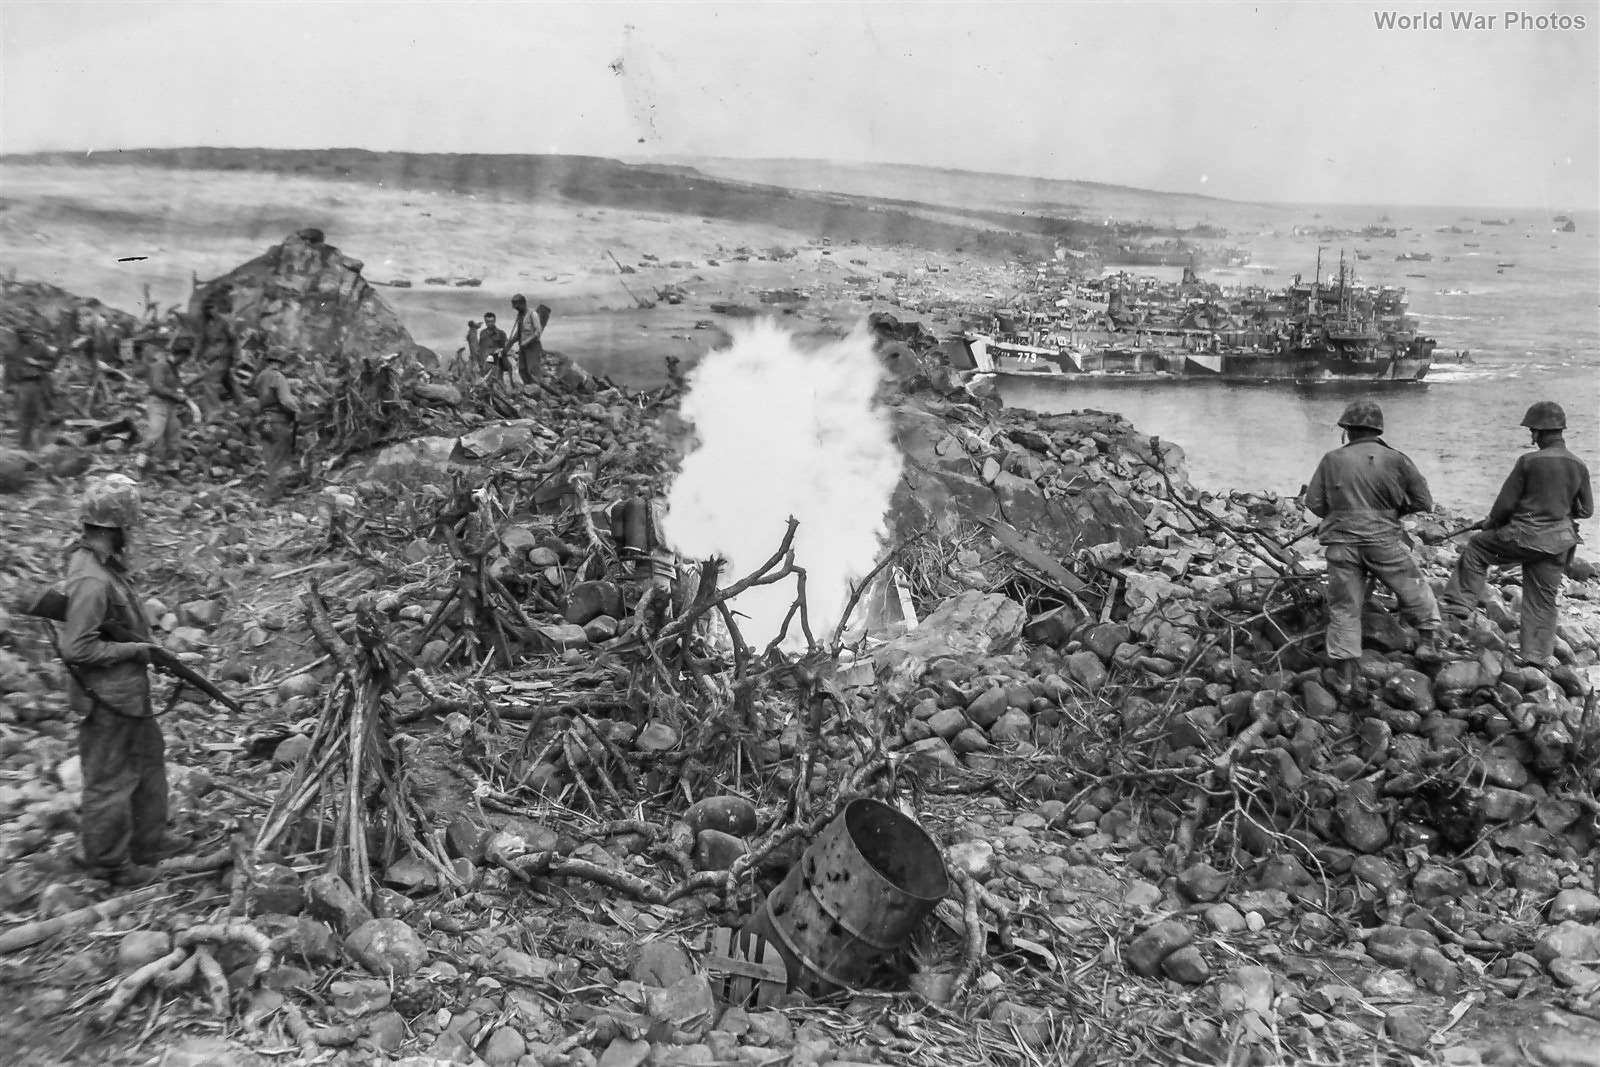 9th Marines use flame thrower on pillbox overlooking landing beaches 24feb